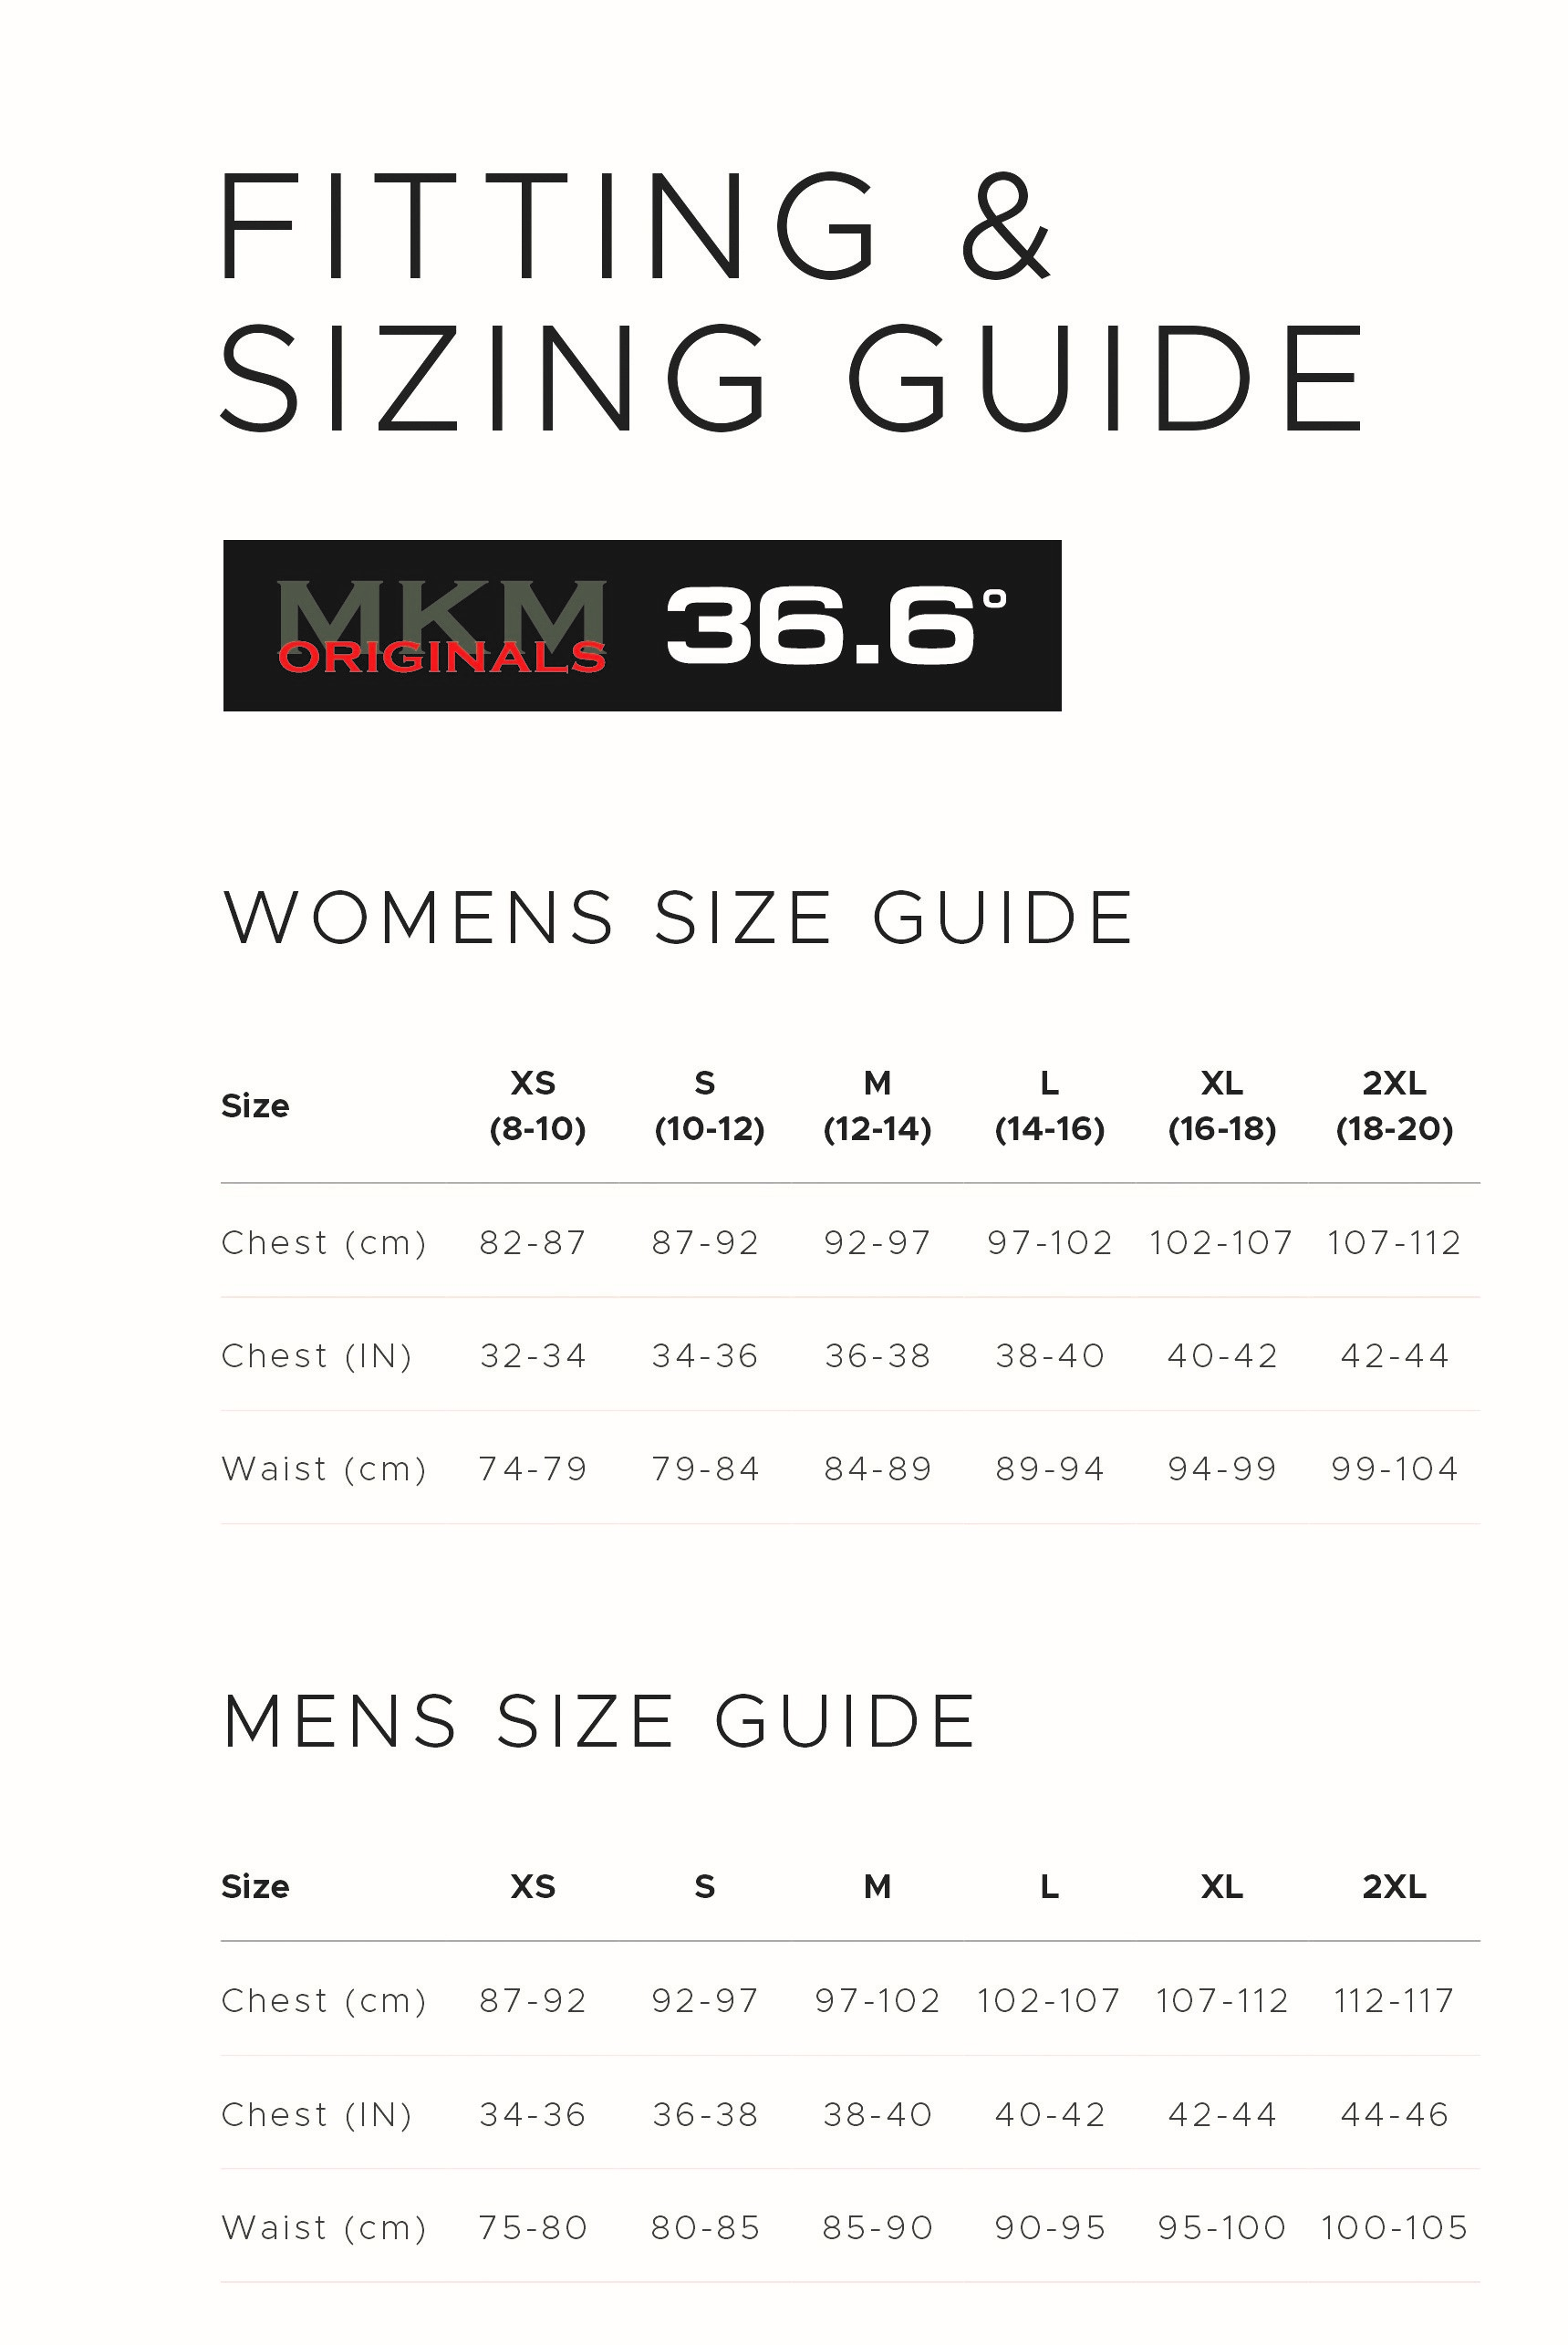 mkm-fitting-size-guide-002-.jpg